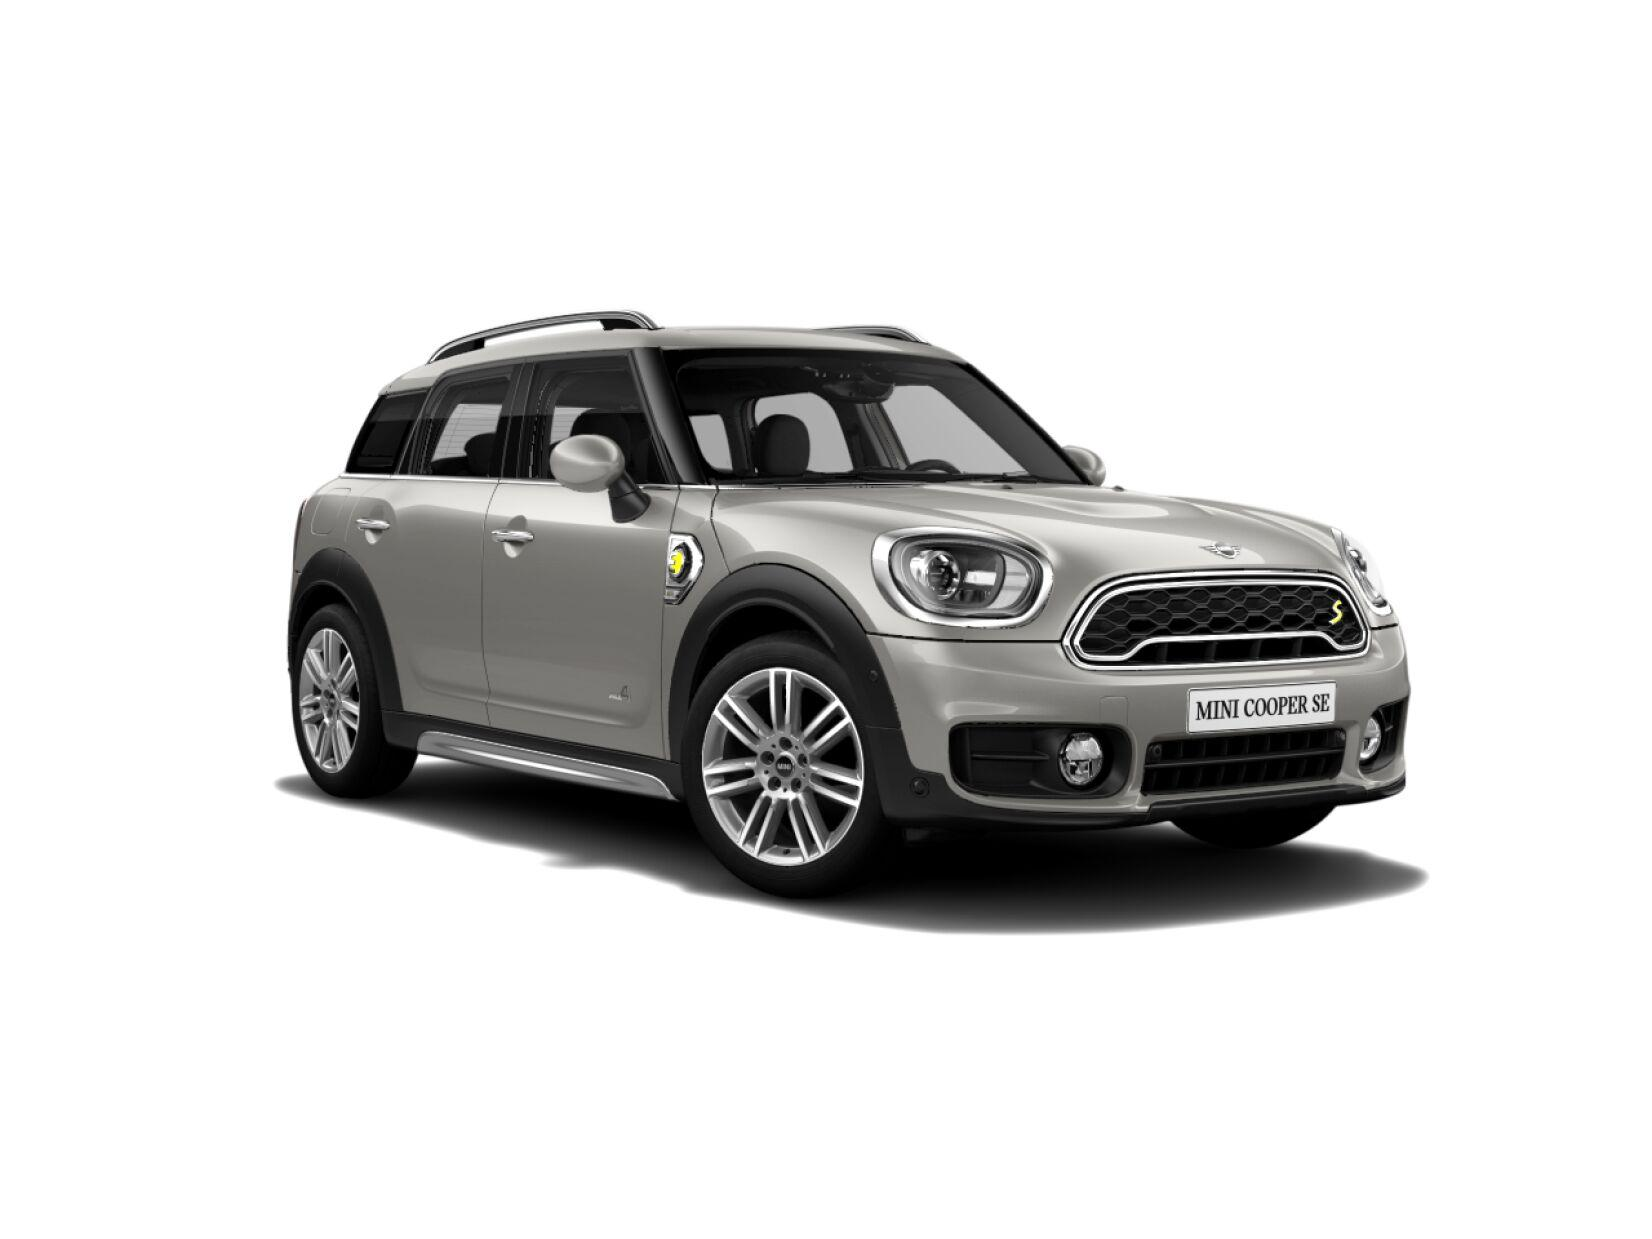 MINI Cooper S E All4 Countryman - hybrid